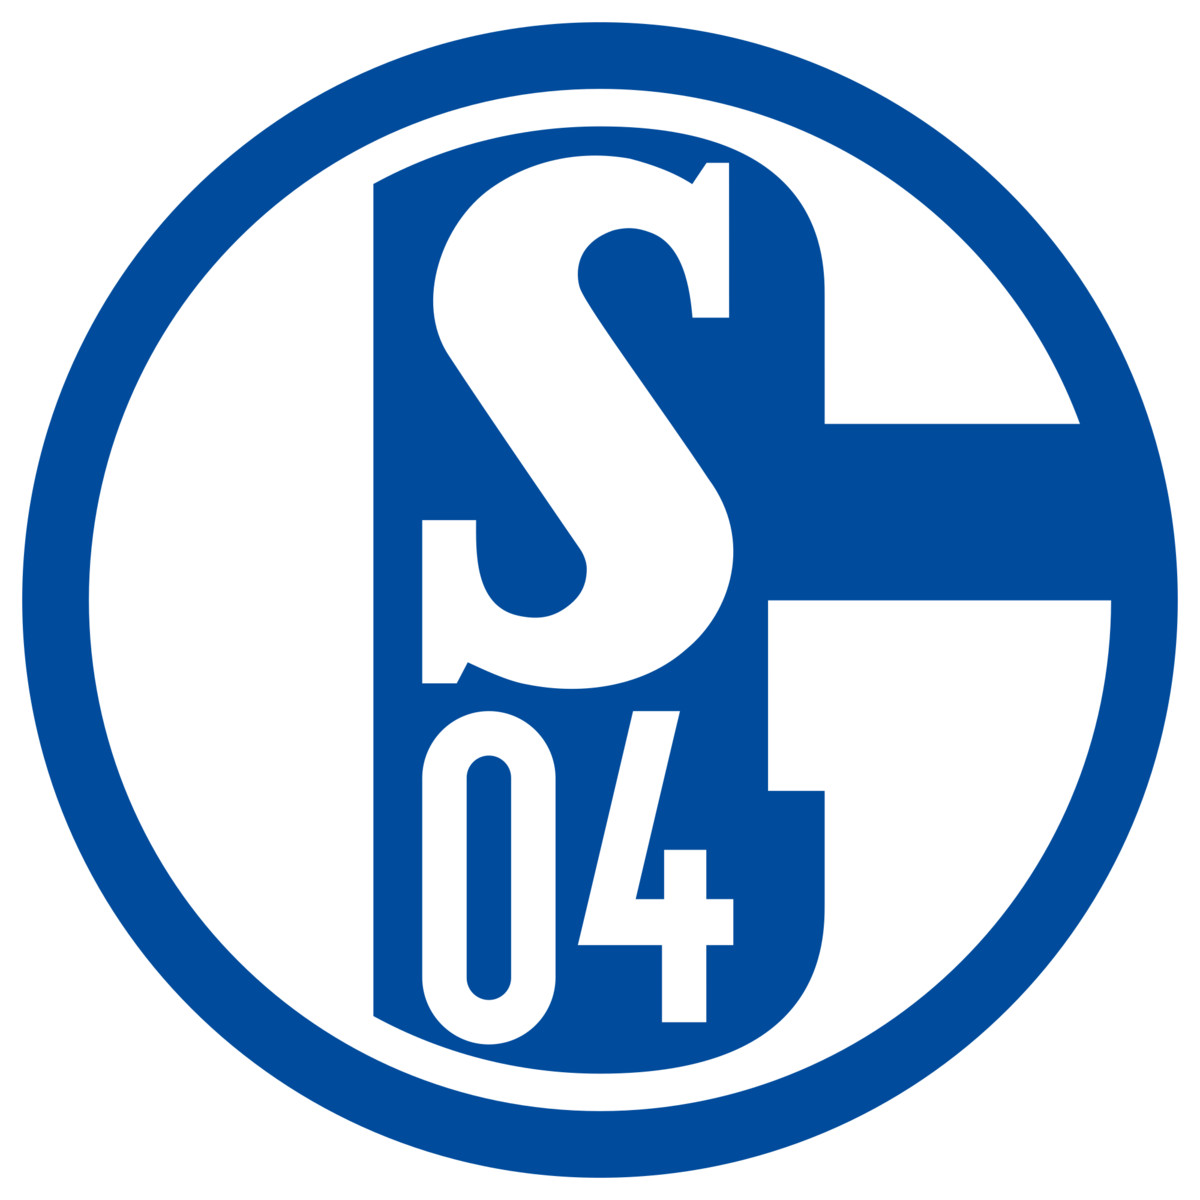 fc schalke 04 wikipedia la enciclopedia libre. Black Bedroom Furniture Sets. Home Design Ideas